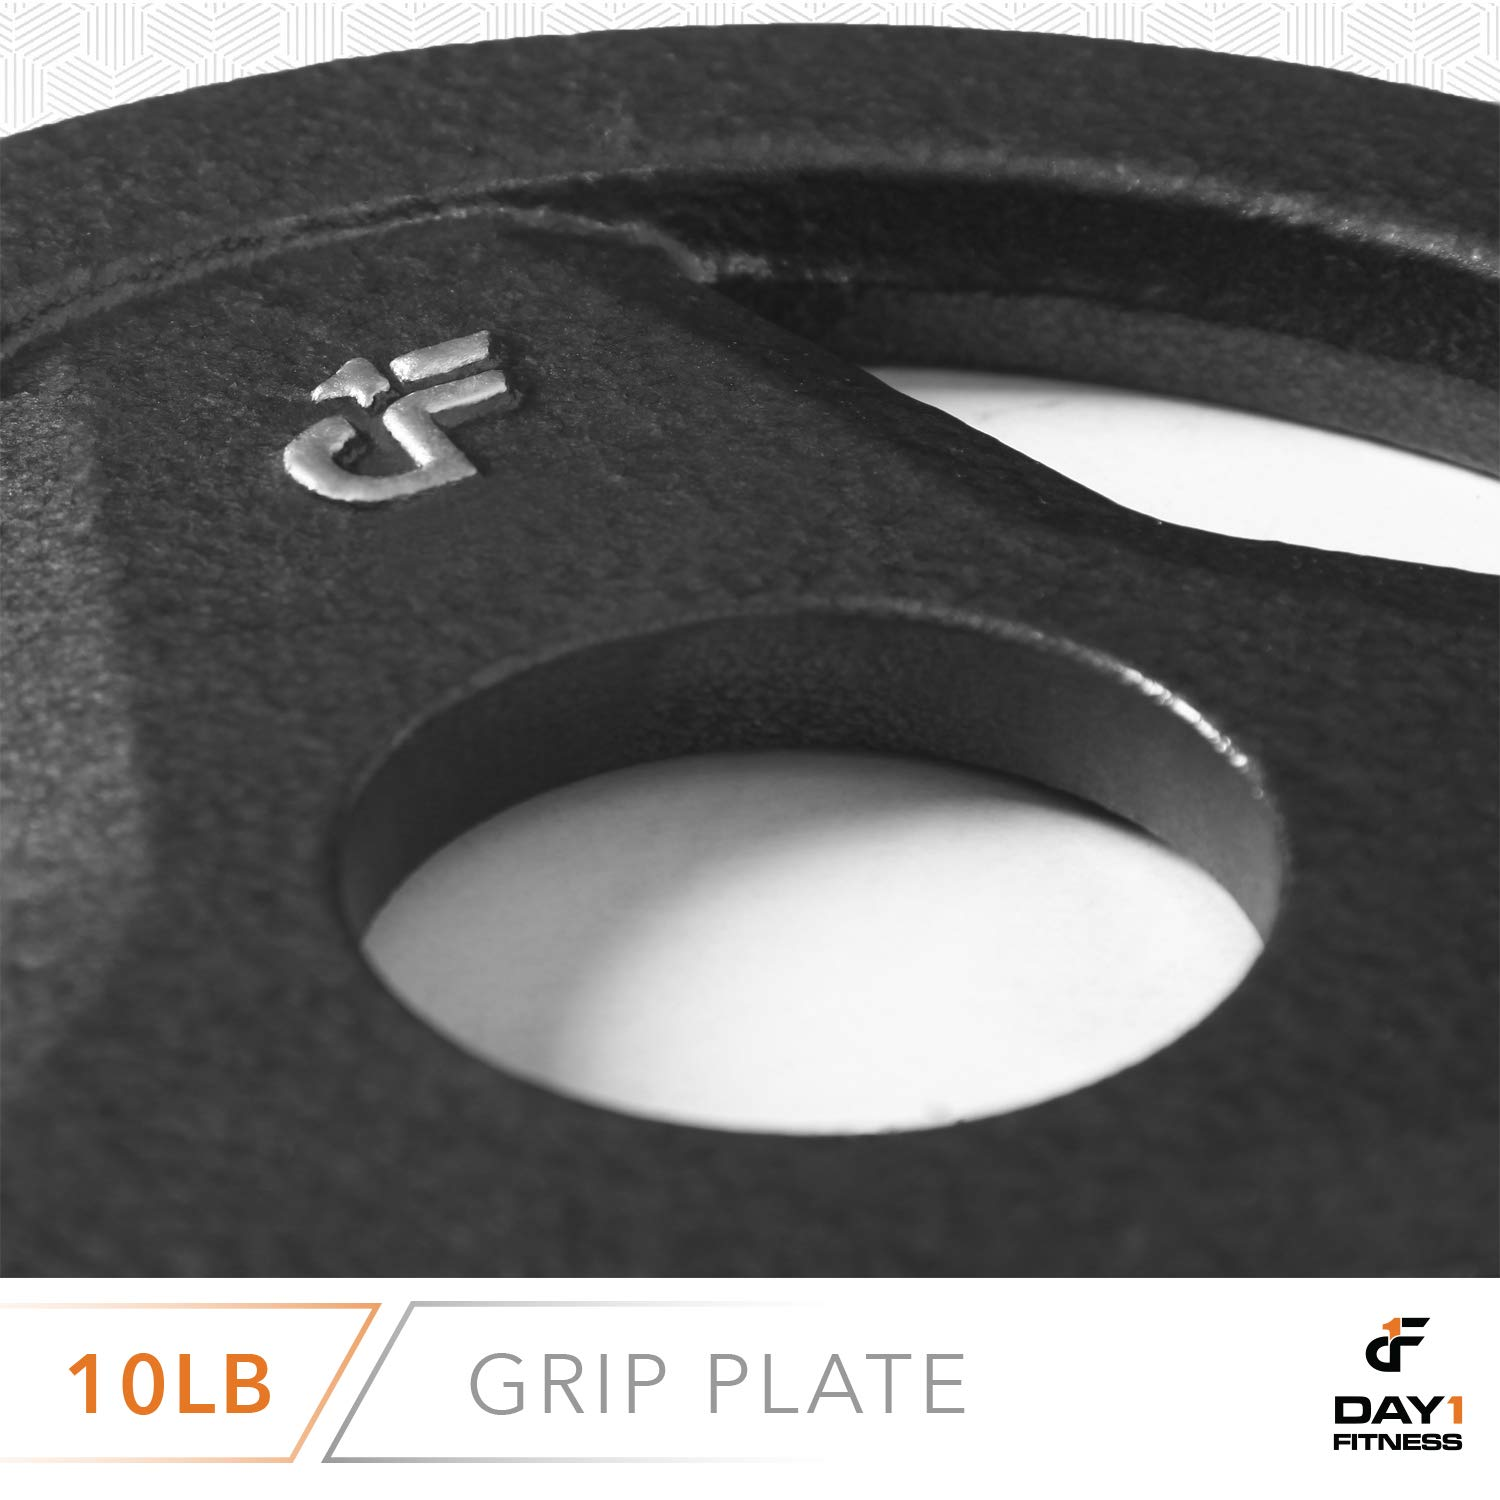 """Day 1 Fitness Cast Iron Olympic 2-Inch Grip Plate for Barbell, 10 Pound Single Plate Iron Grip Plates for Weightlifting, Crossfit - 2"""" Weight Plate for Bodybuilding by Day 1 Fitness (Image #6)"""